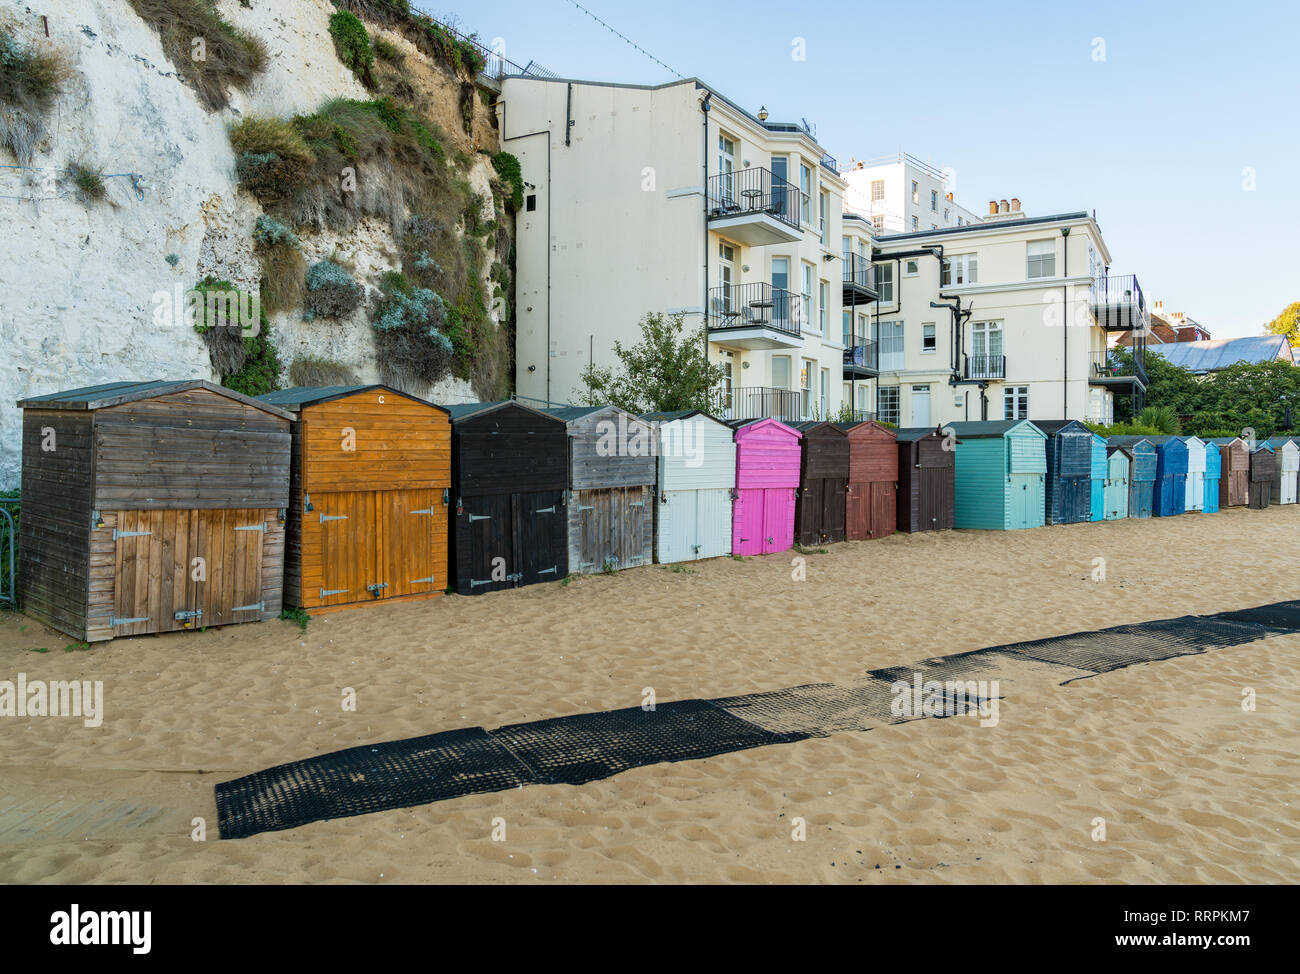 Viking Bay, Broadstairs, Kent, England, UK - September 19, 2017: Beach huts in front of houses at the beach - Stock Image